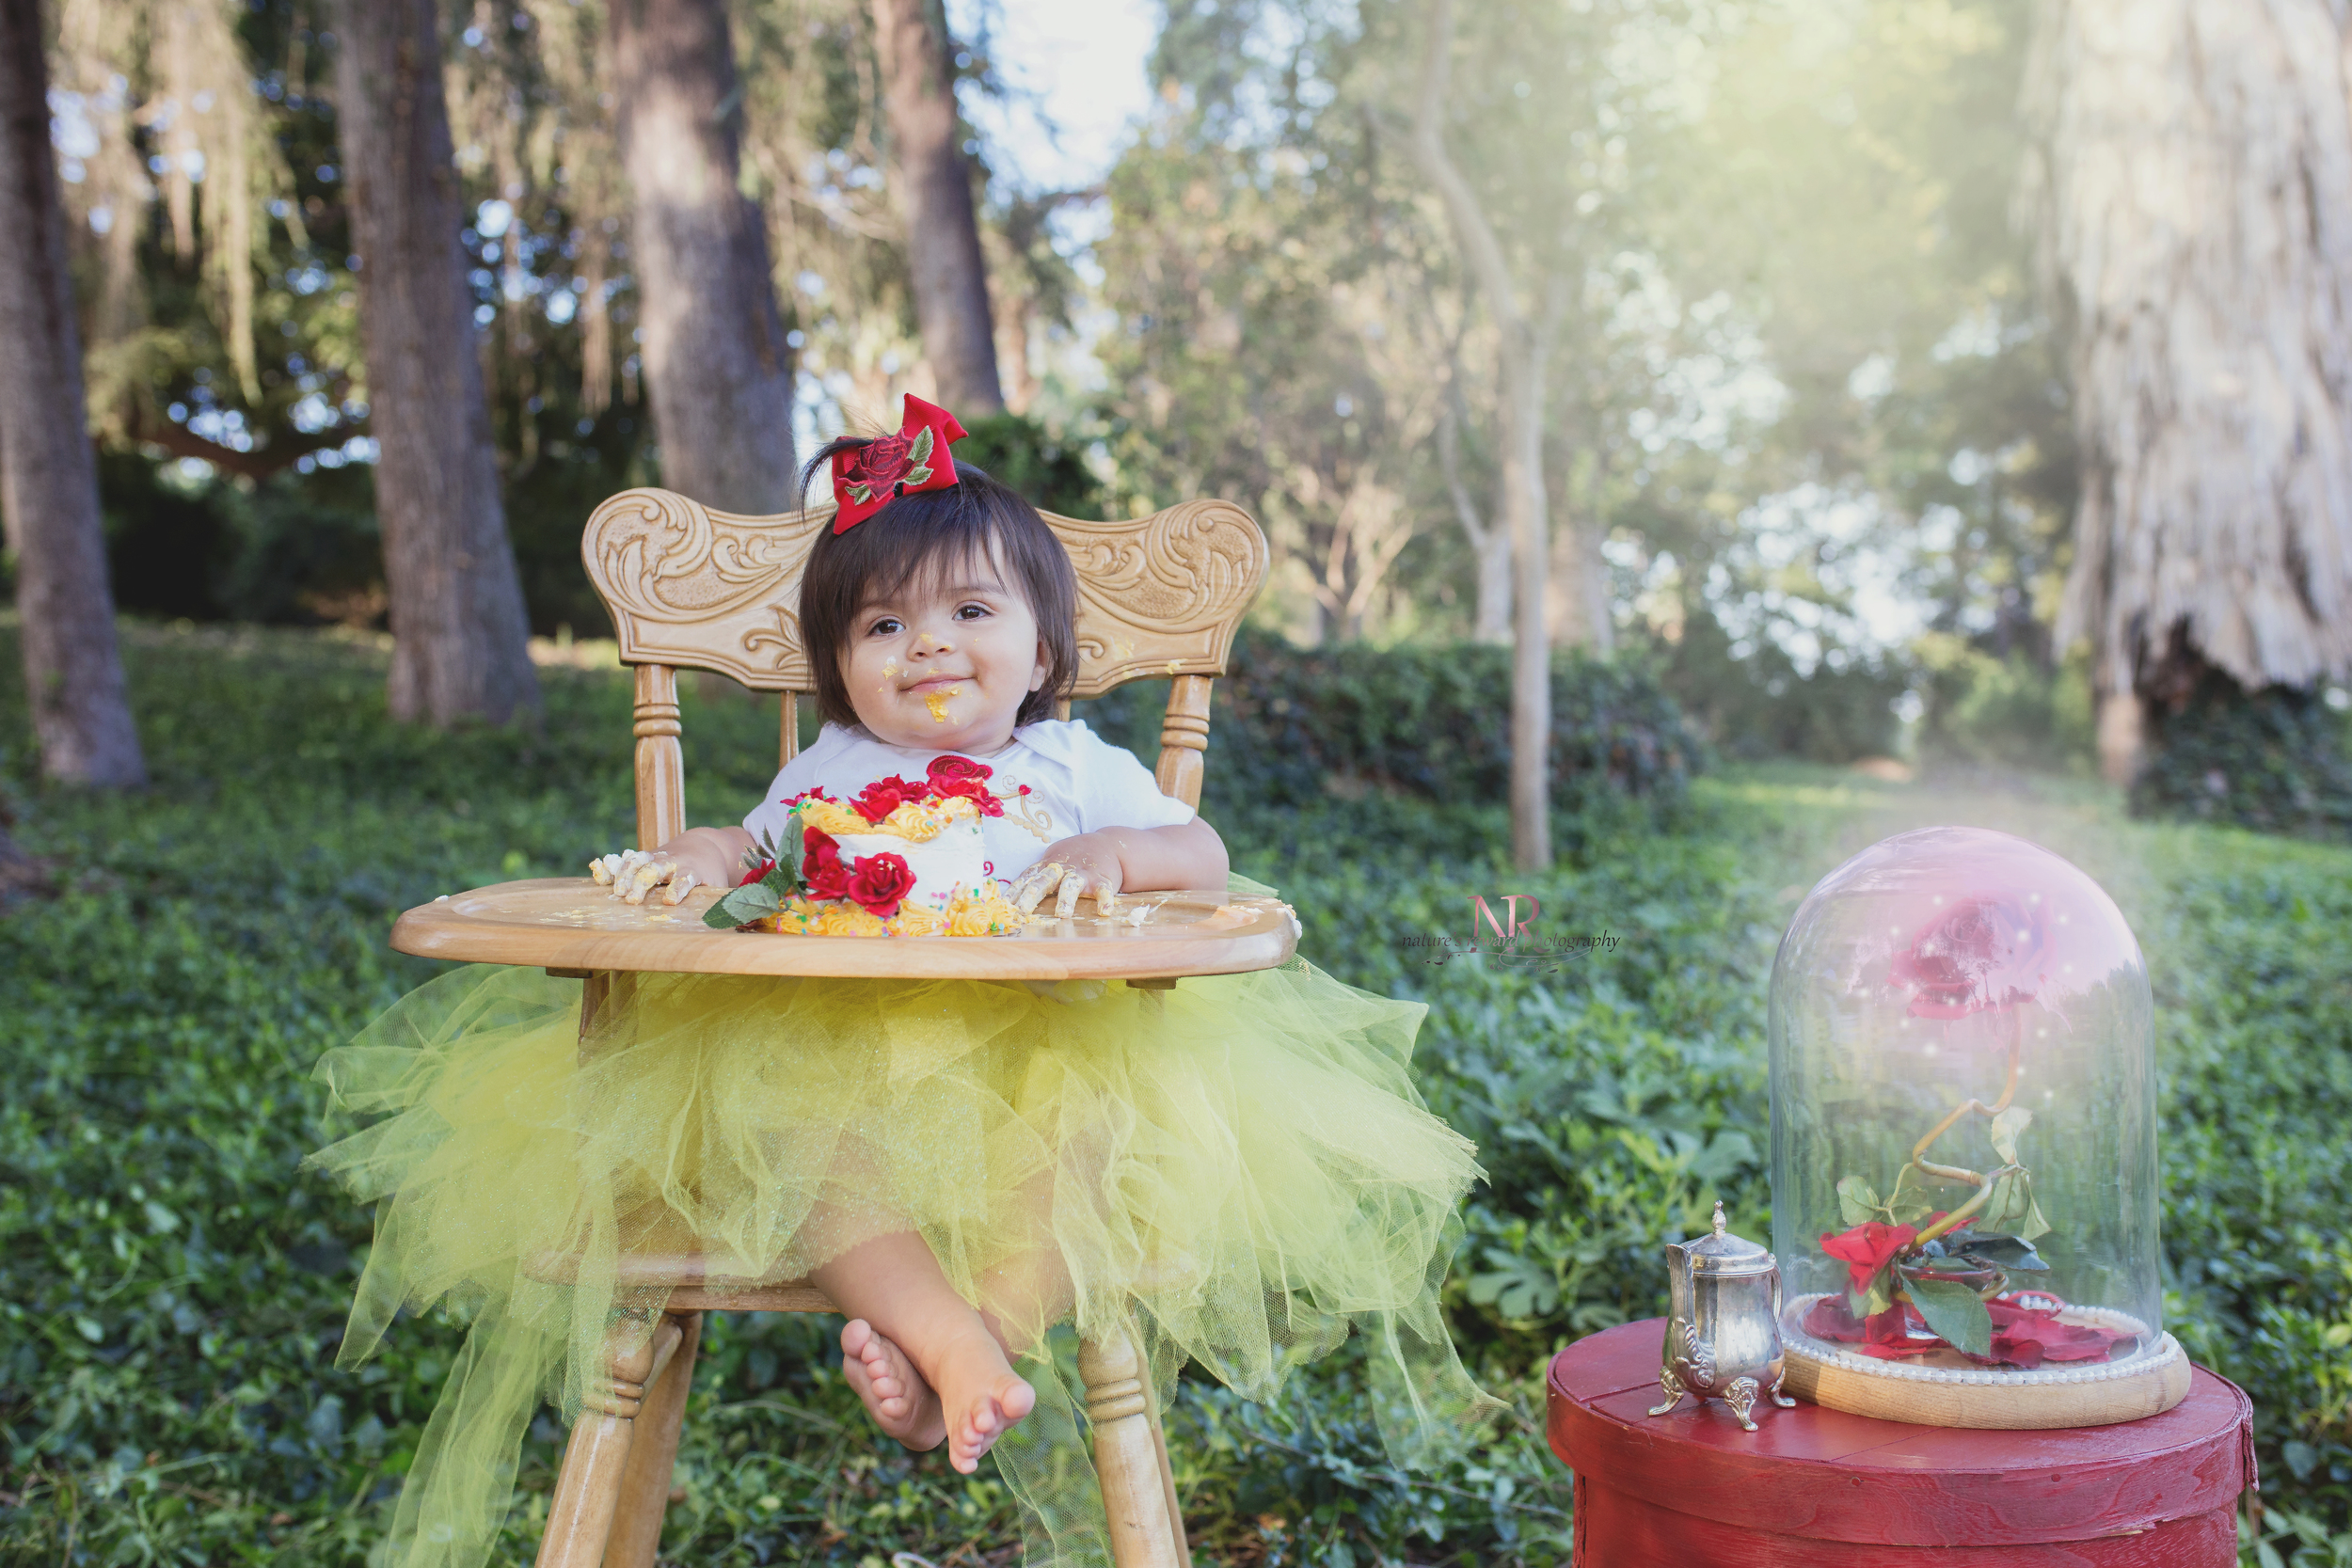 This Beauti ful Belle grinning as she is covered in yellow and white frosting with her enchanted rose in this Disney's Beauty and the Beast Inspired cake smash session in redlands, california.